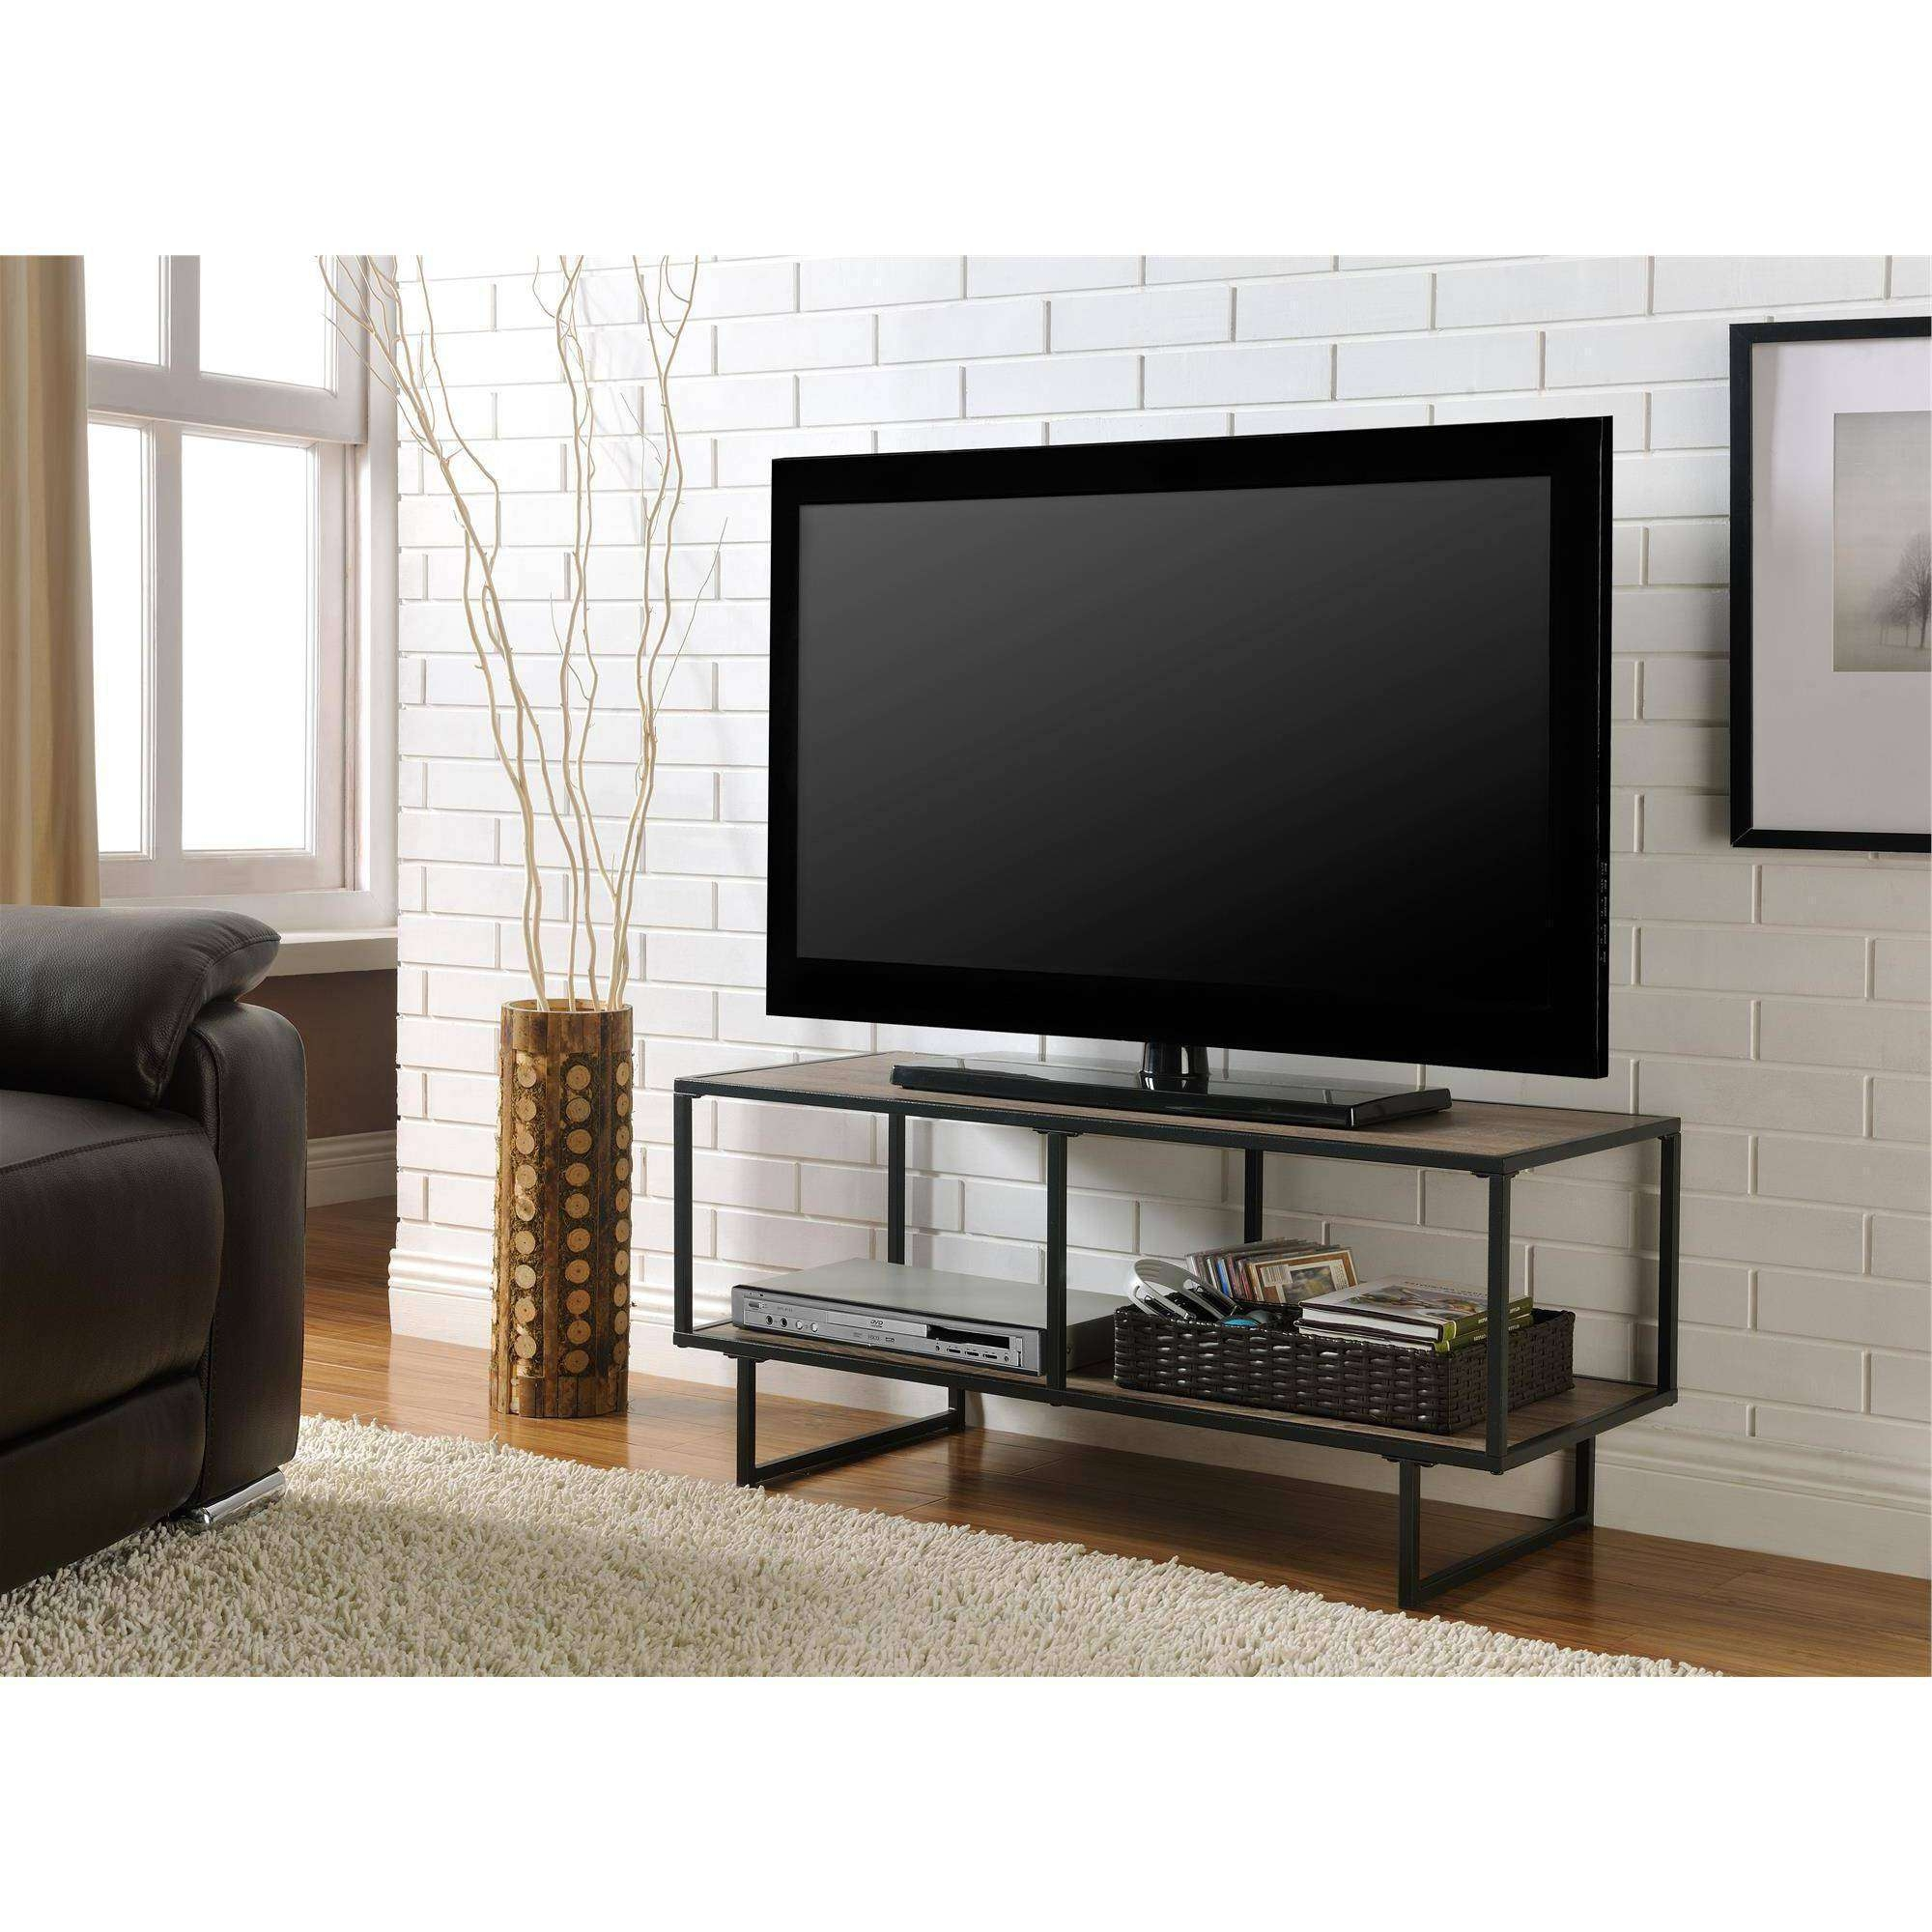 Altra Furniture Emmett 1 Shelf Tv Stand Coffee Table In Sonoma Oak With Regard To Tv Stands Coffee Table Sets (View 1 of 15)